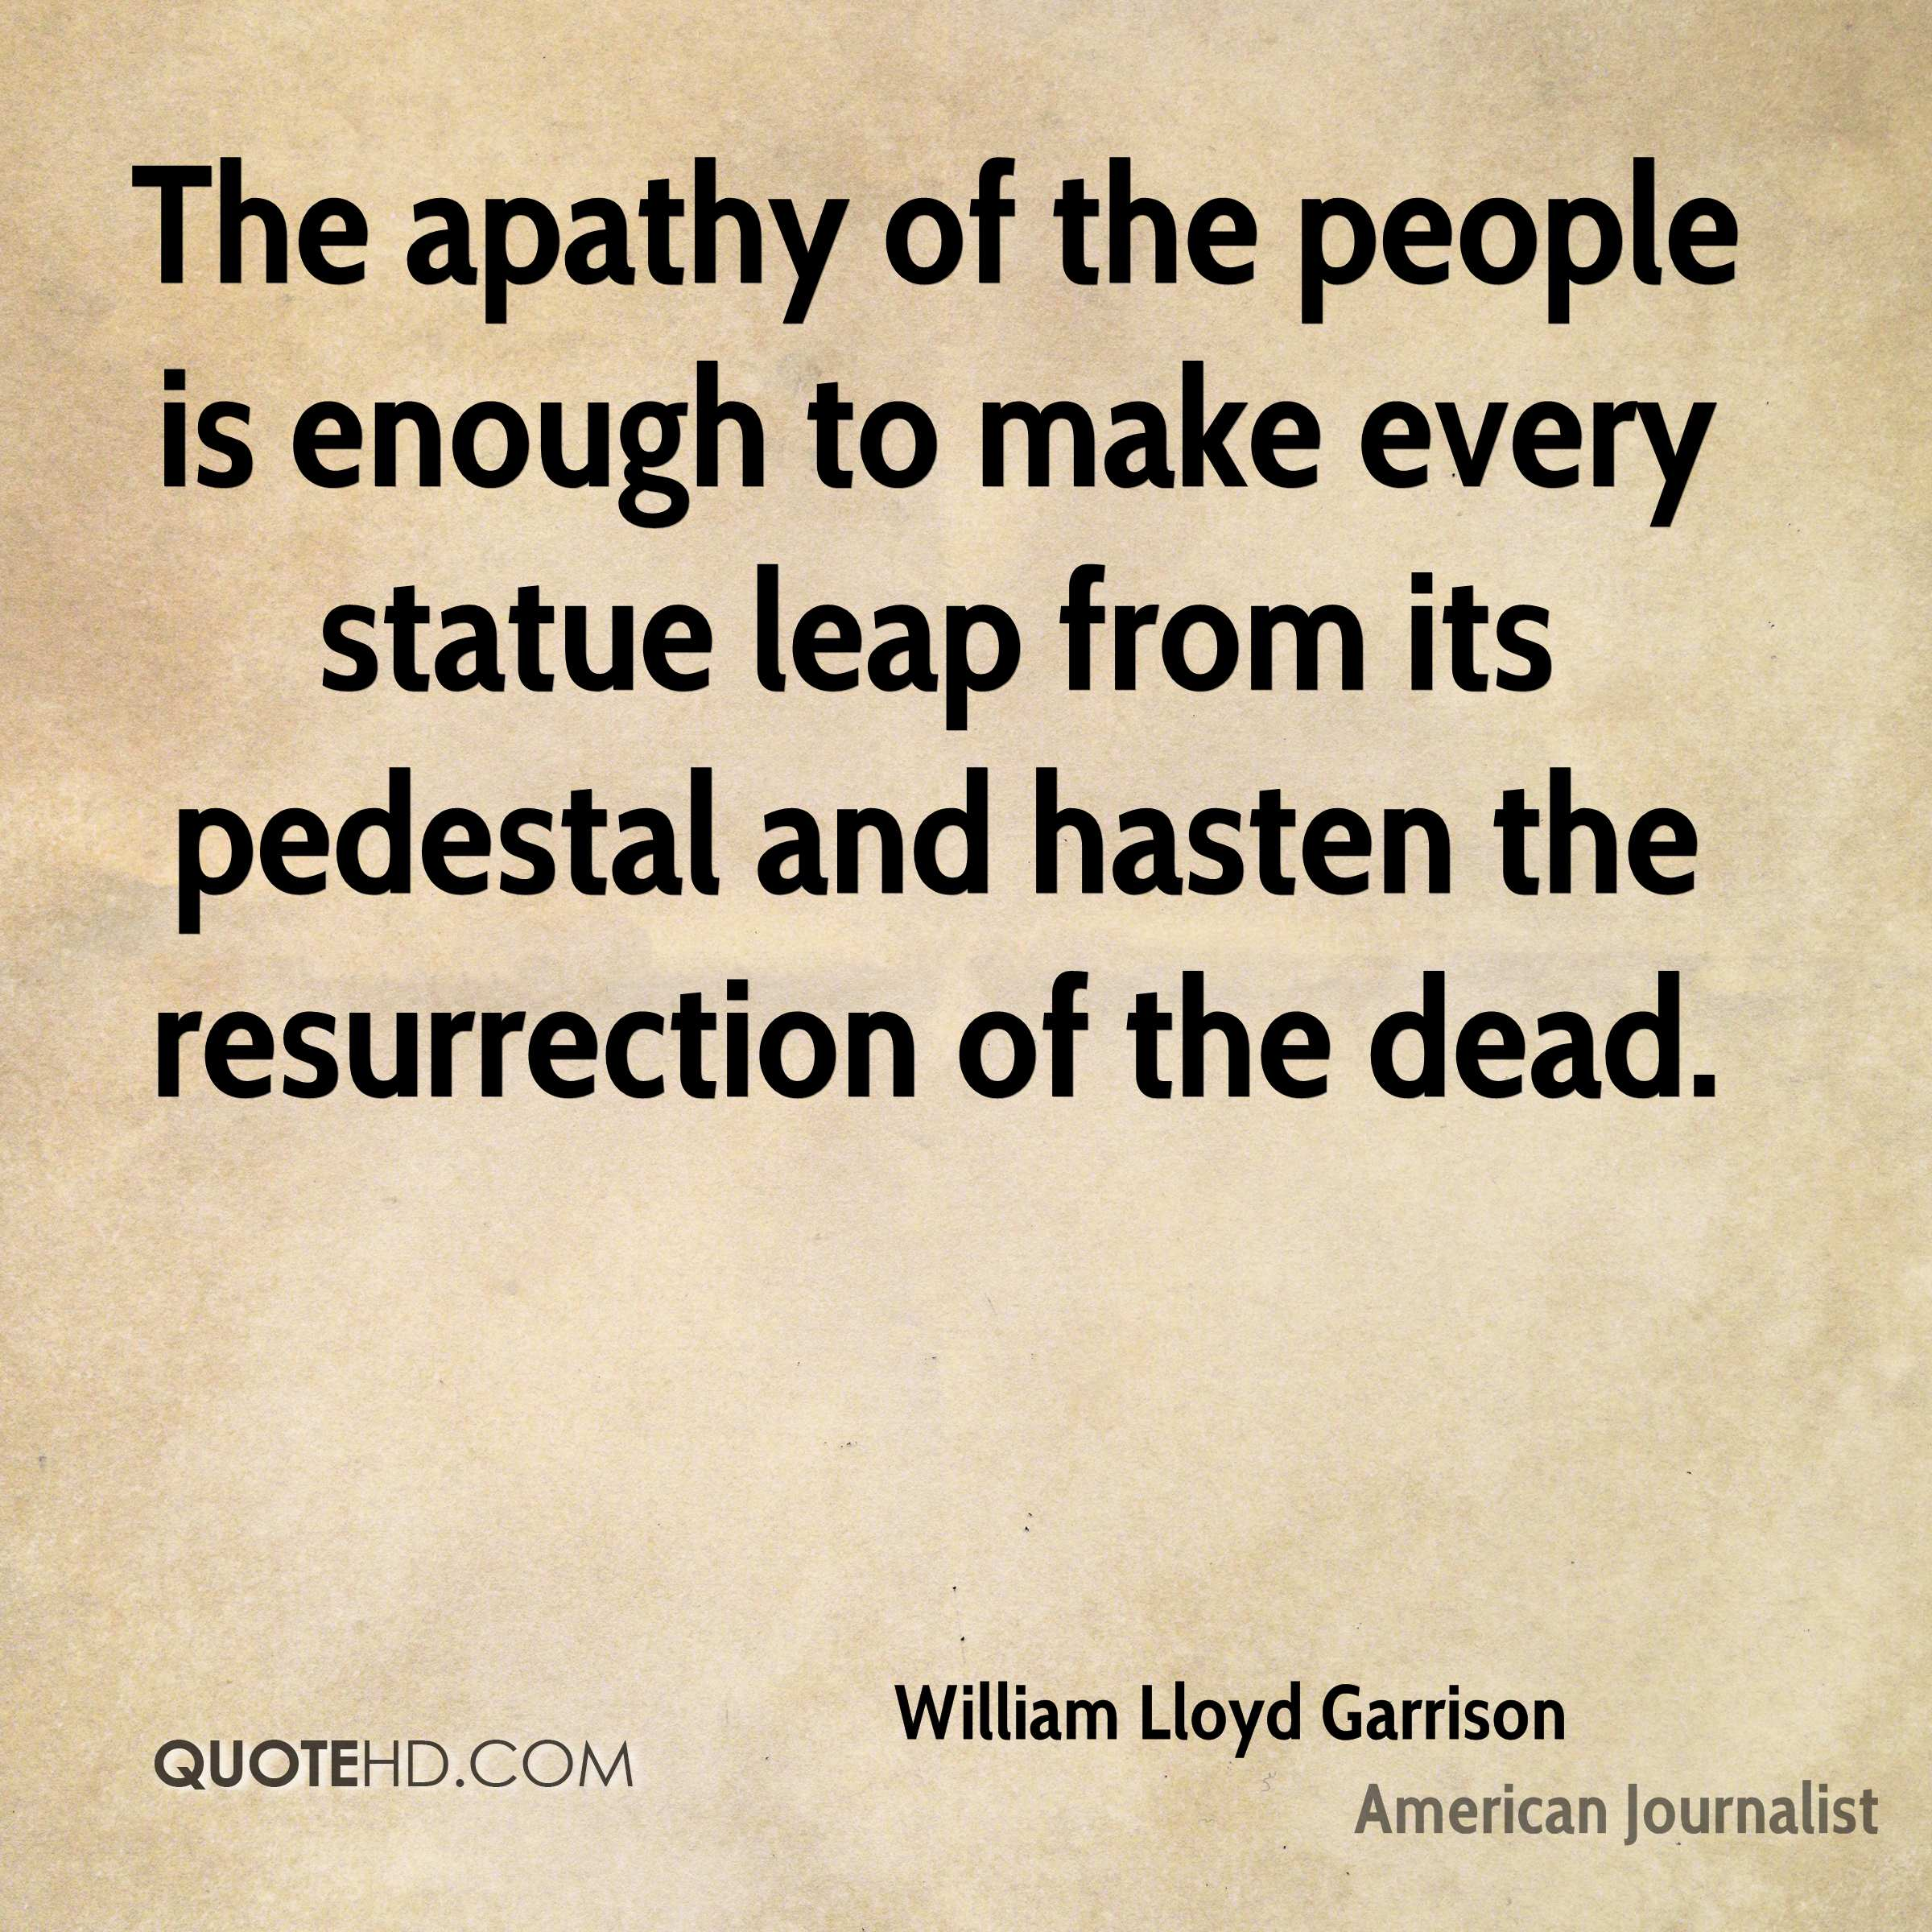 The apathy of the people is enough to make every statue leap from its pedestal and hasten the resurrection of the dead.